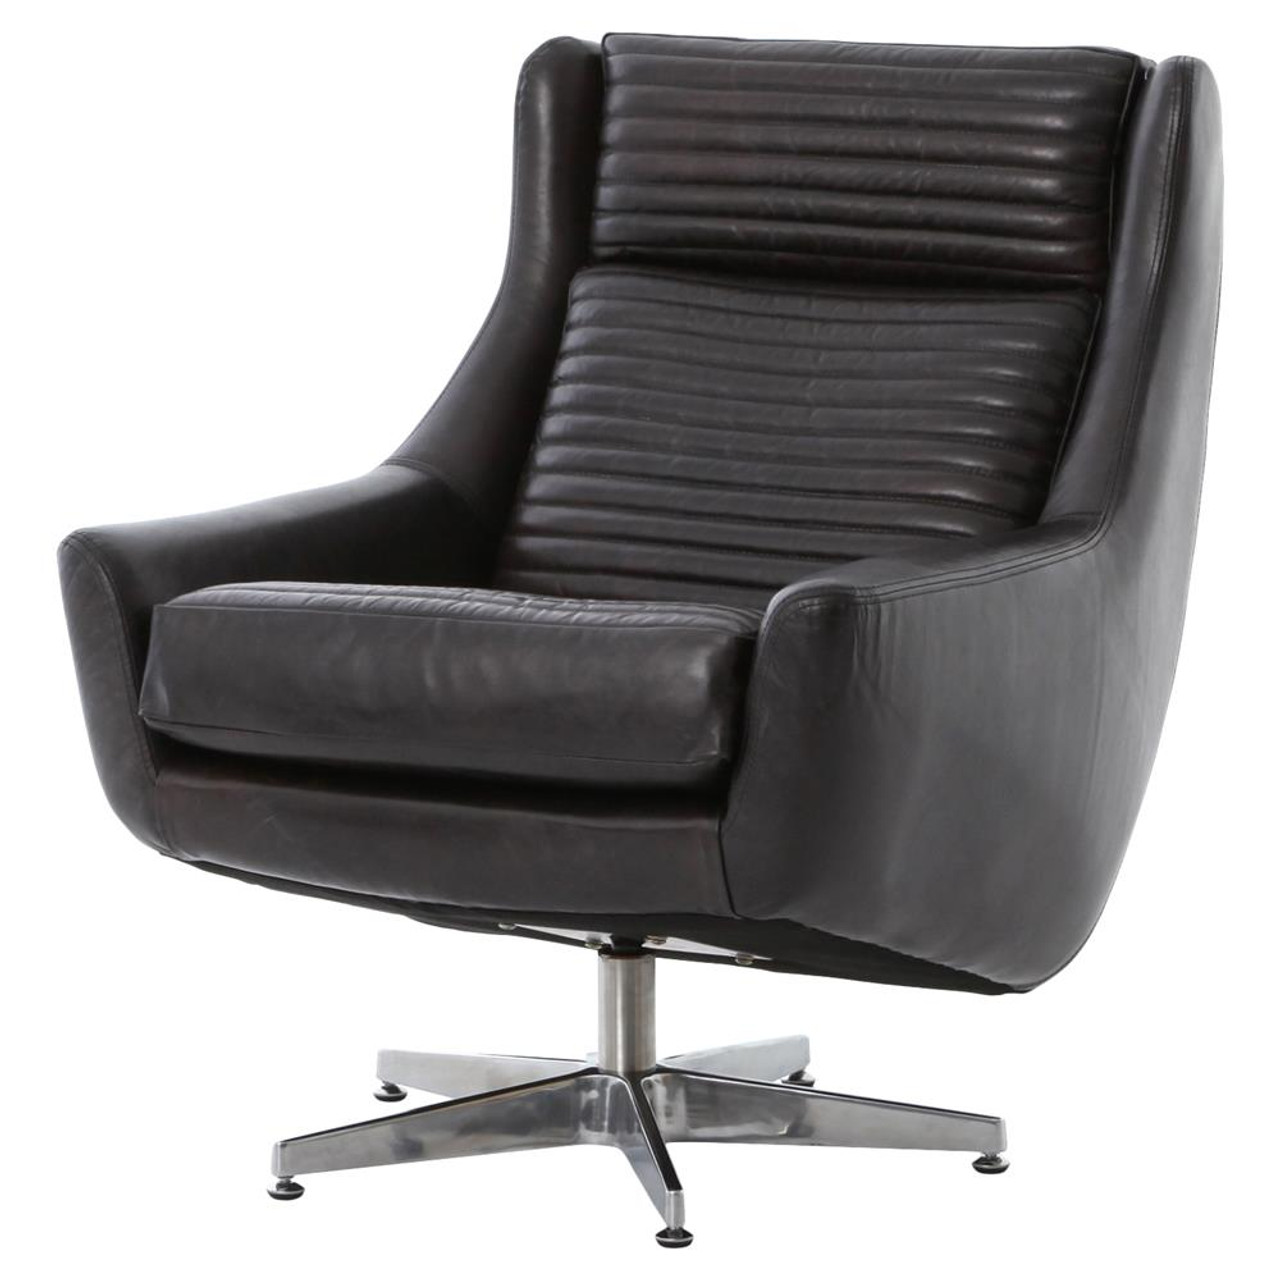 A Shapely Swivel Seat Inspired By Mid Century Design Our: English Charles Black Leather Swivel Chair